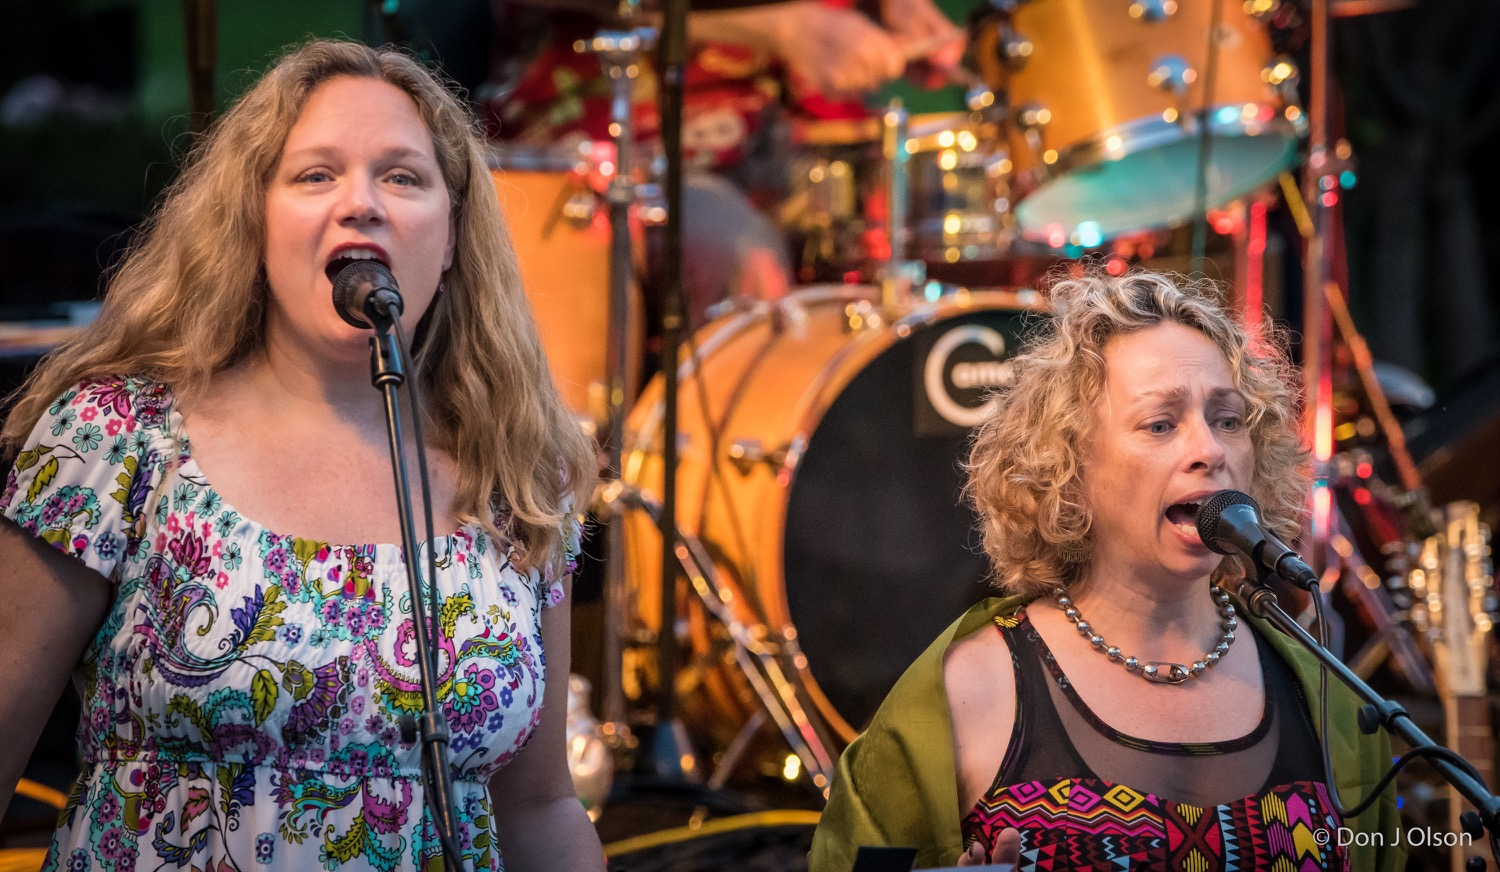 Colleen O and Edie Rae / The Veterans' Memorial Wolfe Park Amphitheater / St. Louis Park, Minnesota / August 1st, 2015